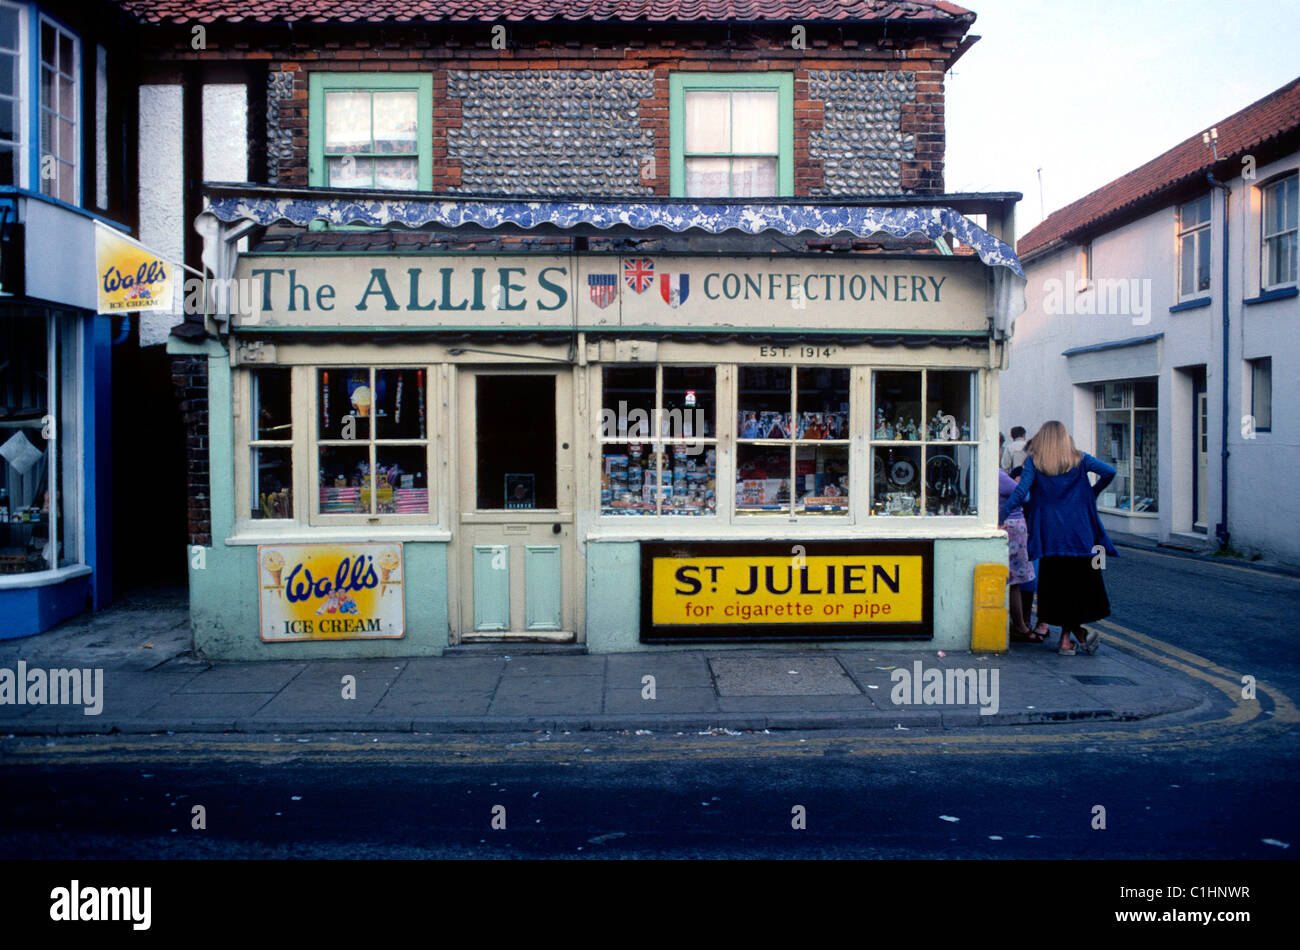 The Allies Confectionery Shop Norfolk England 1974    KATHY DEWITT - Stock Image